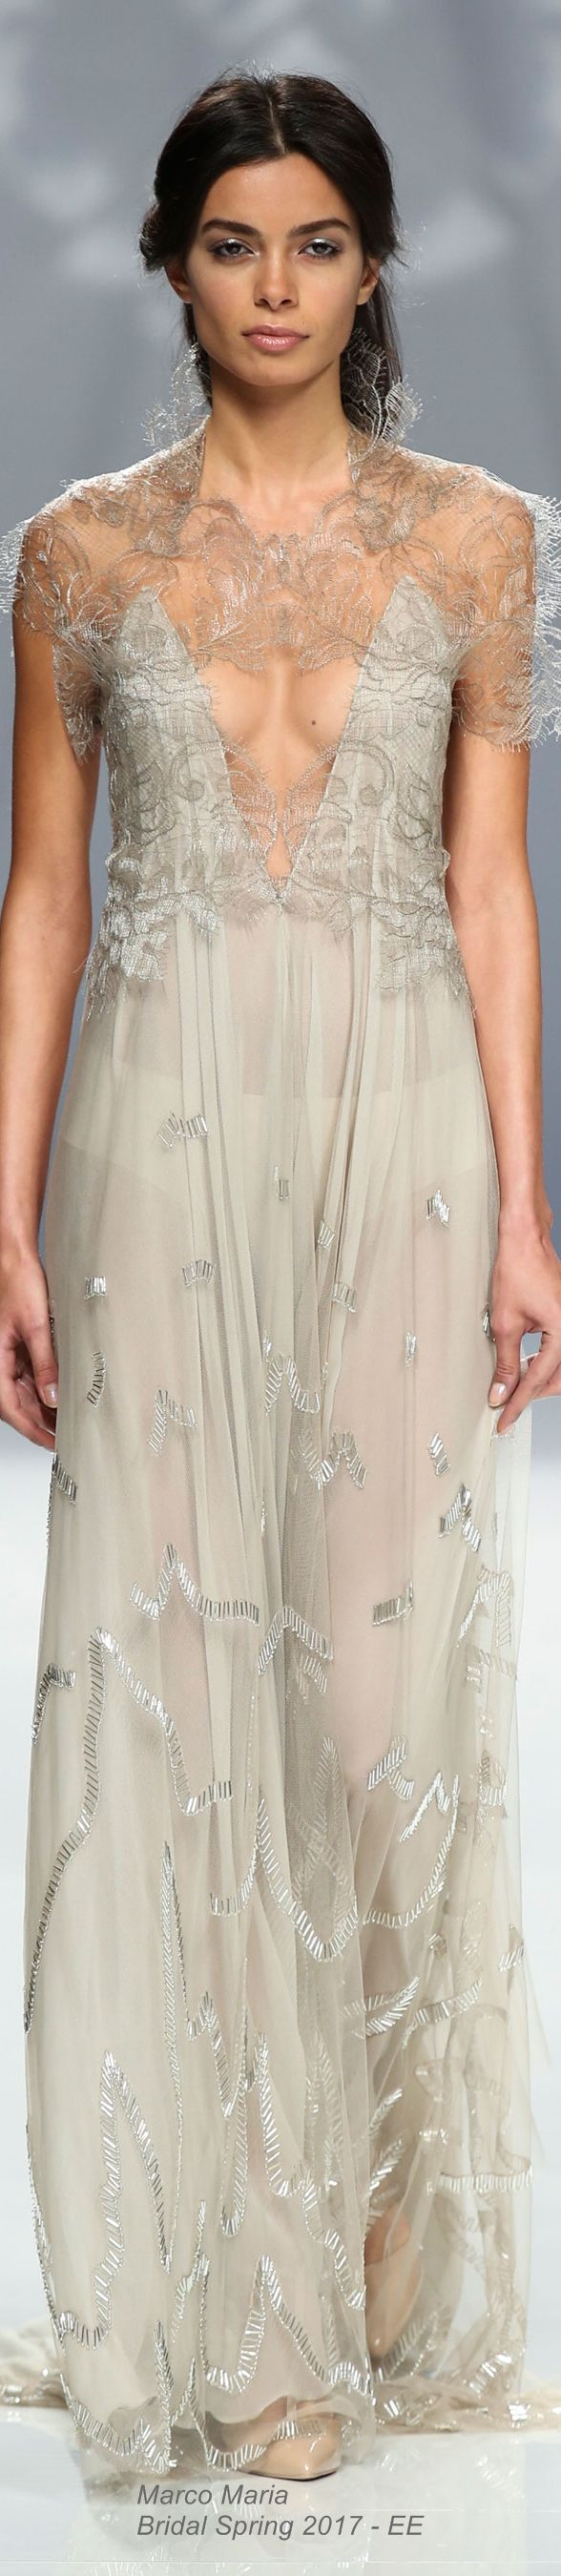 Marco Maria Bridal Spring 2017 /// this is very pretty but also very see through. Becca if you where this I think Grandmama would have a heart attack